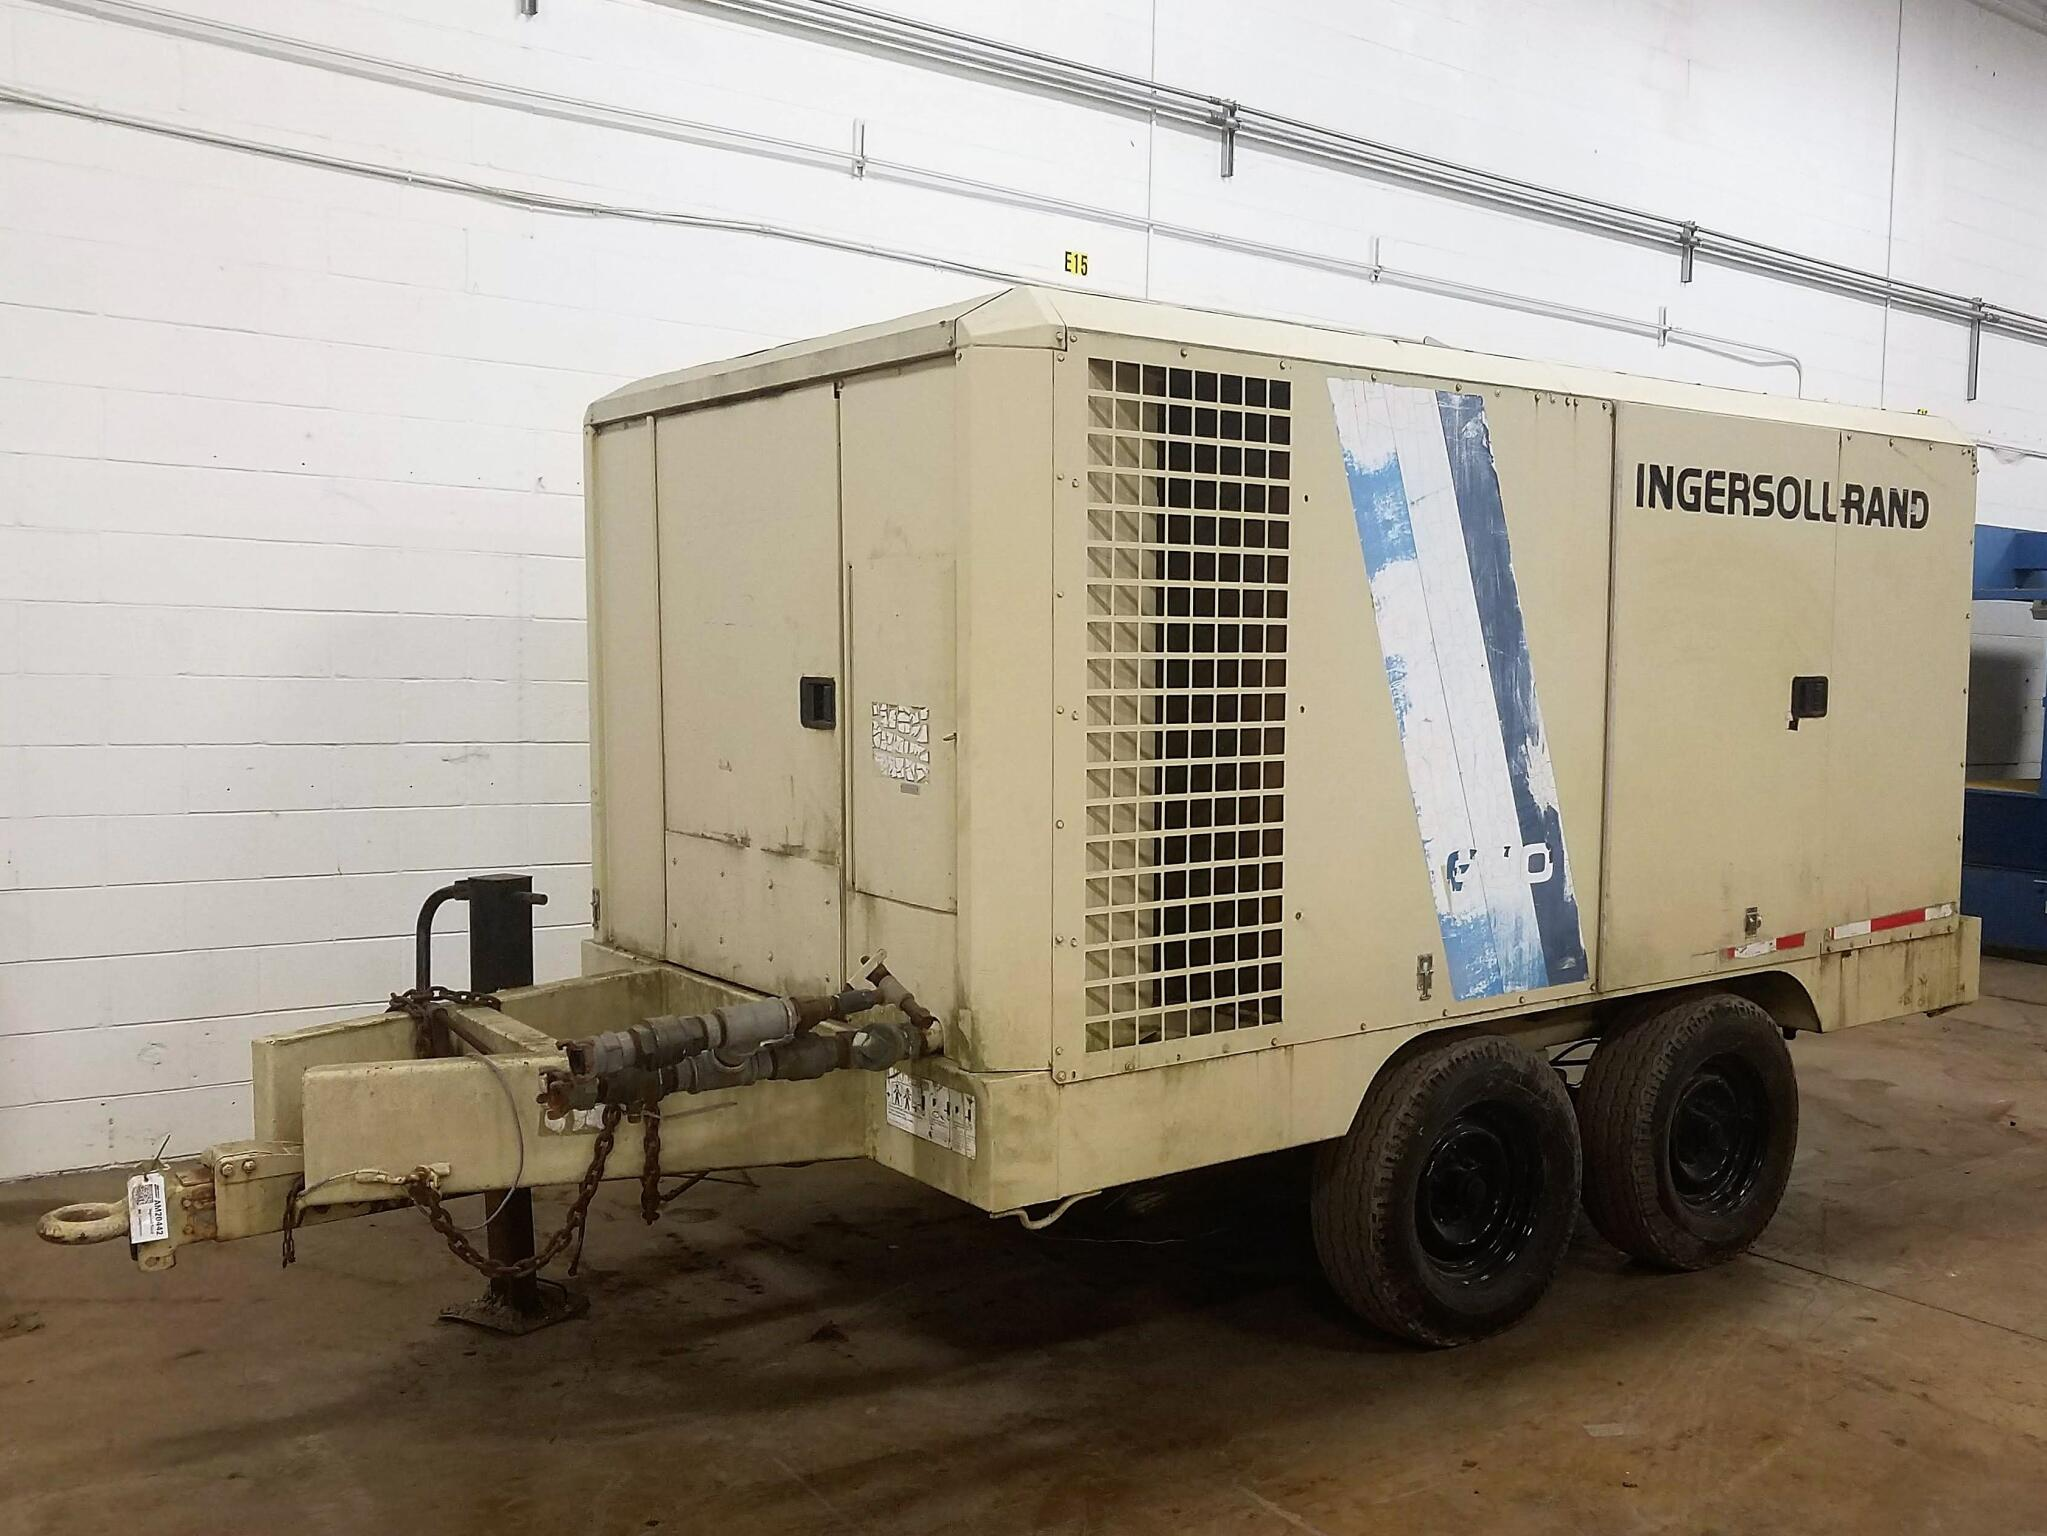 Ingersoll Rand #600 Portable Air Compressor